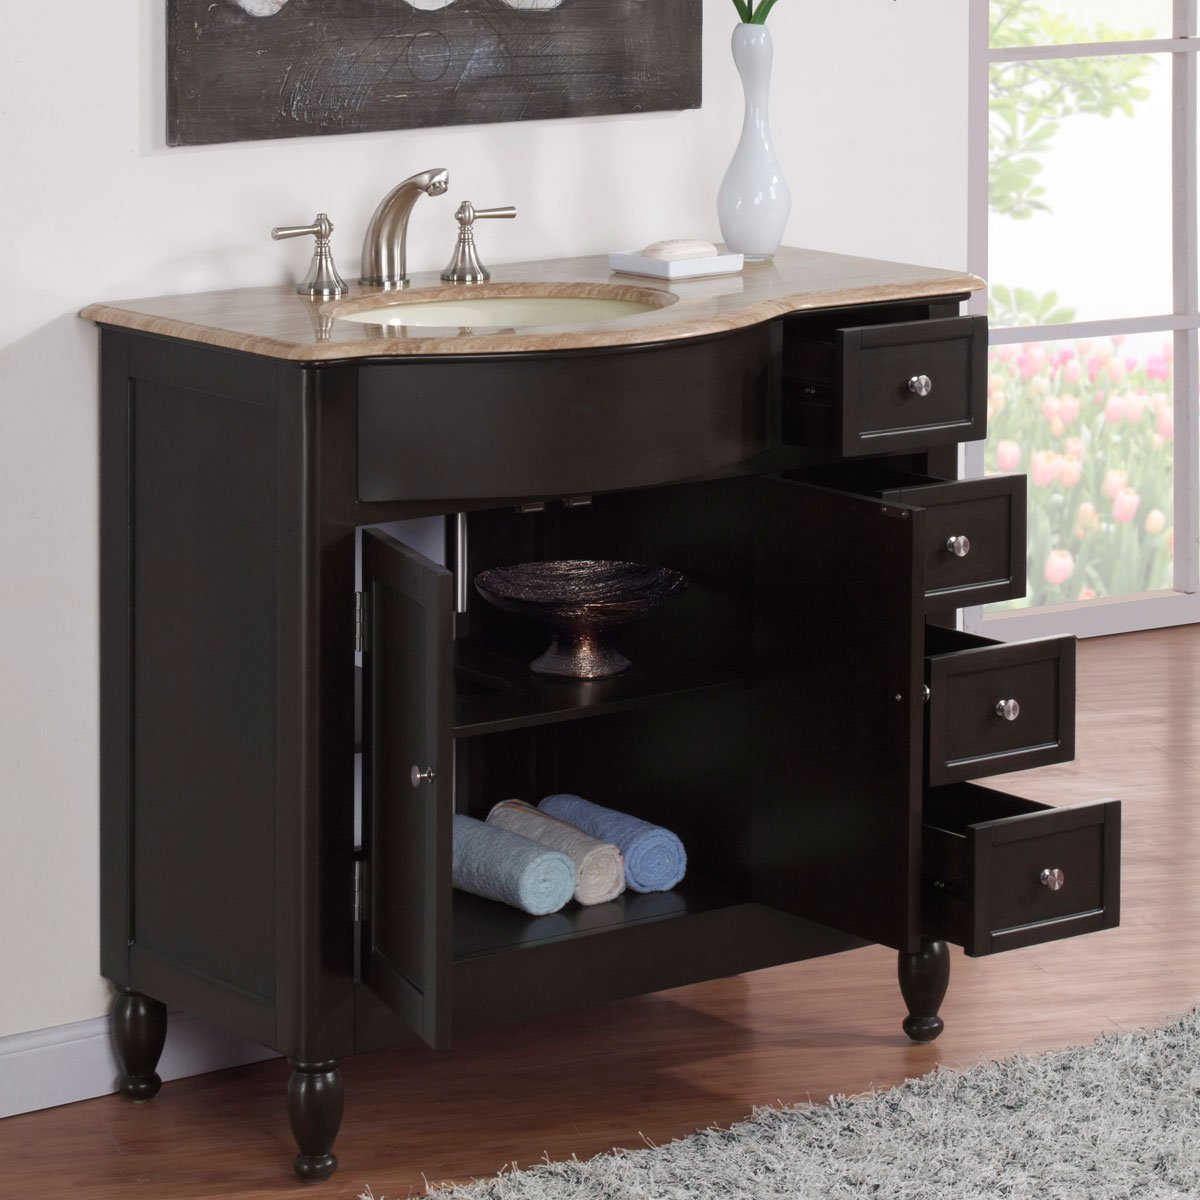 Amazoncom Silkroad Exclusive Off Center Single Left Sink Bathroom - Bathroom vanity with sink on right side